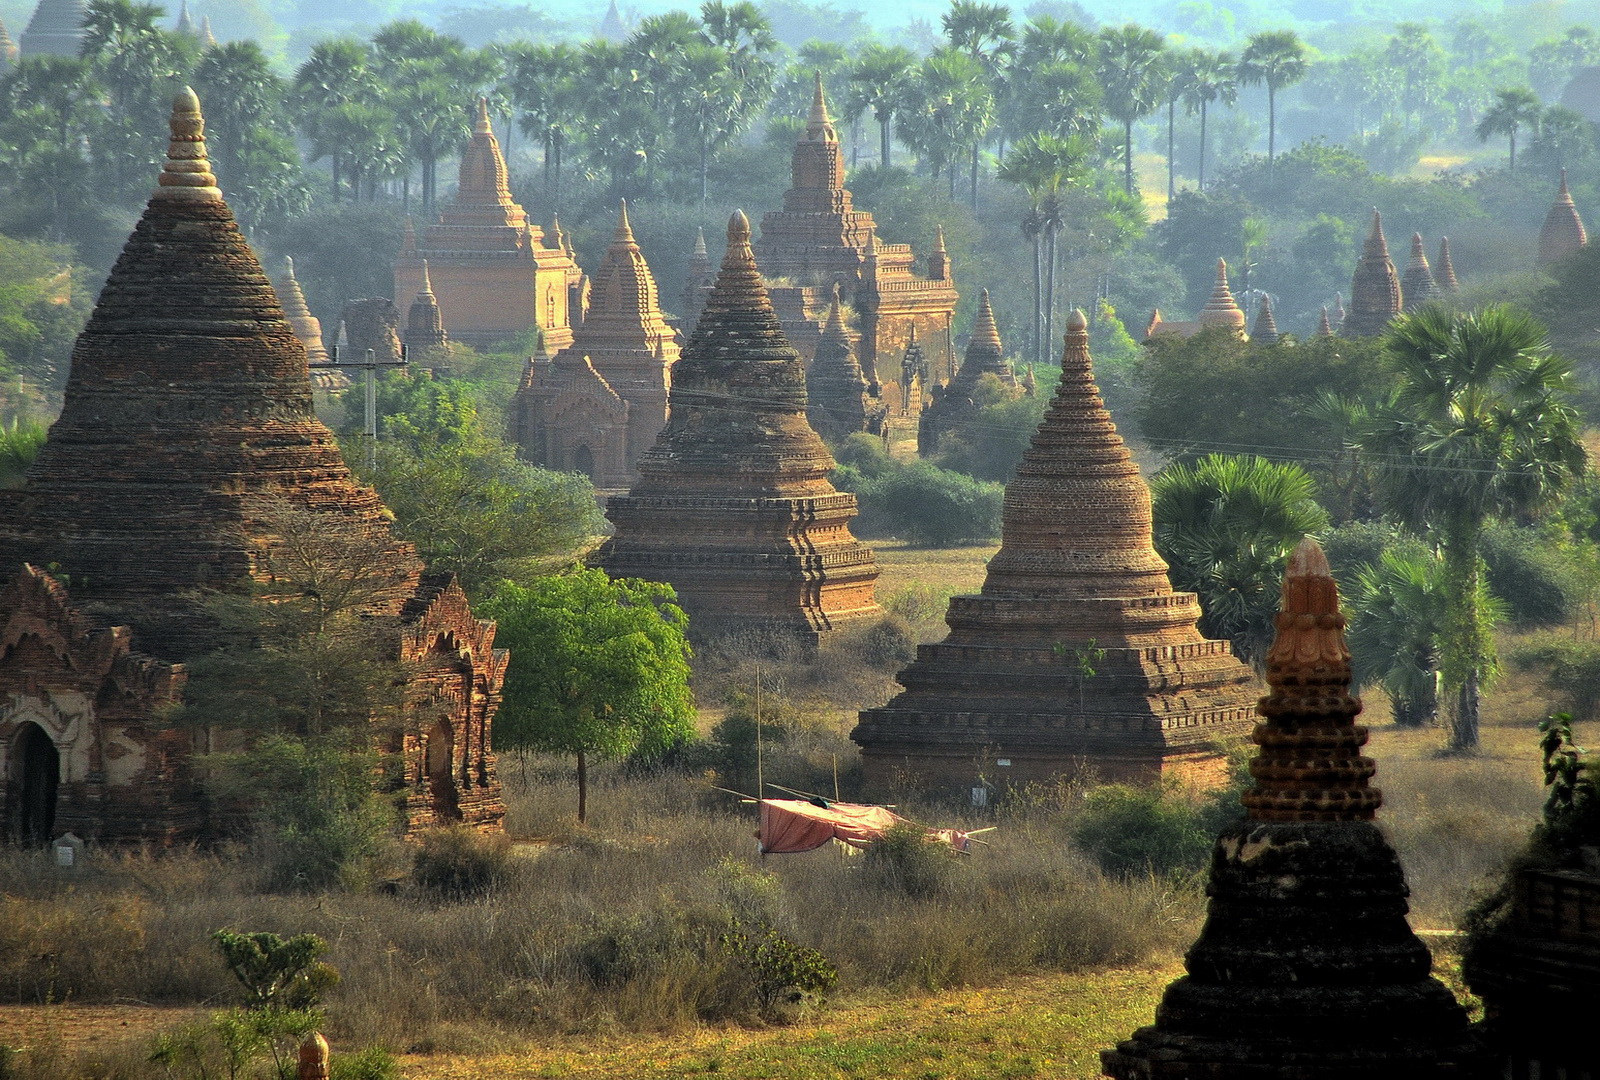 Myanmar World Heritage